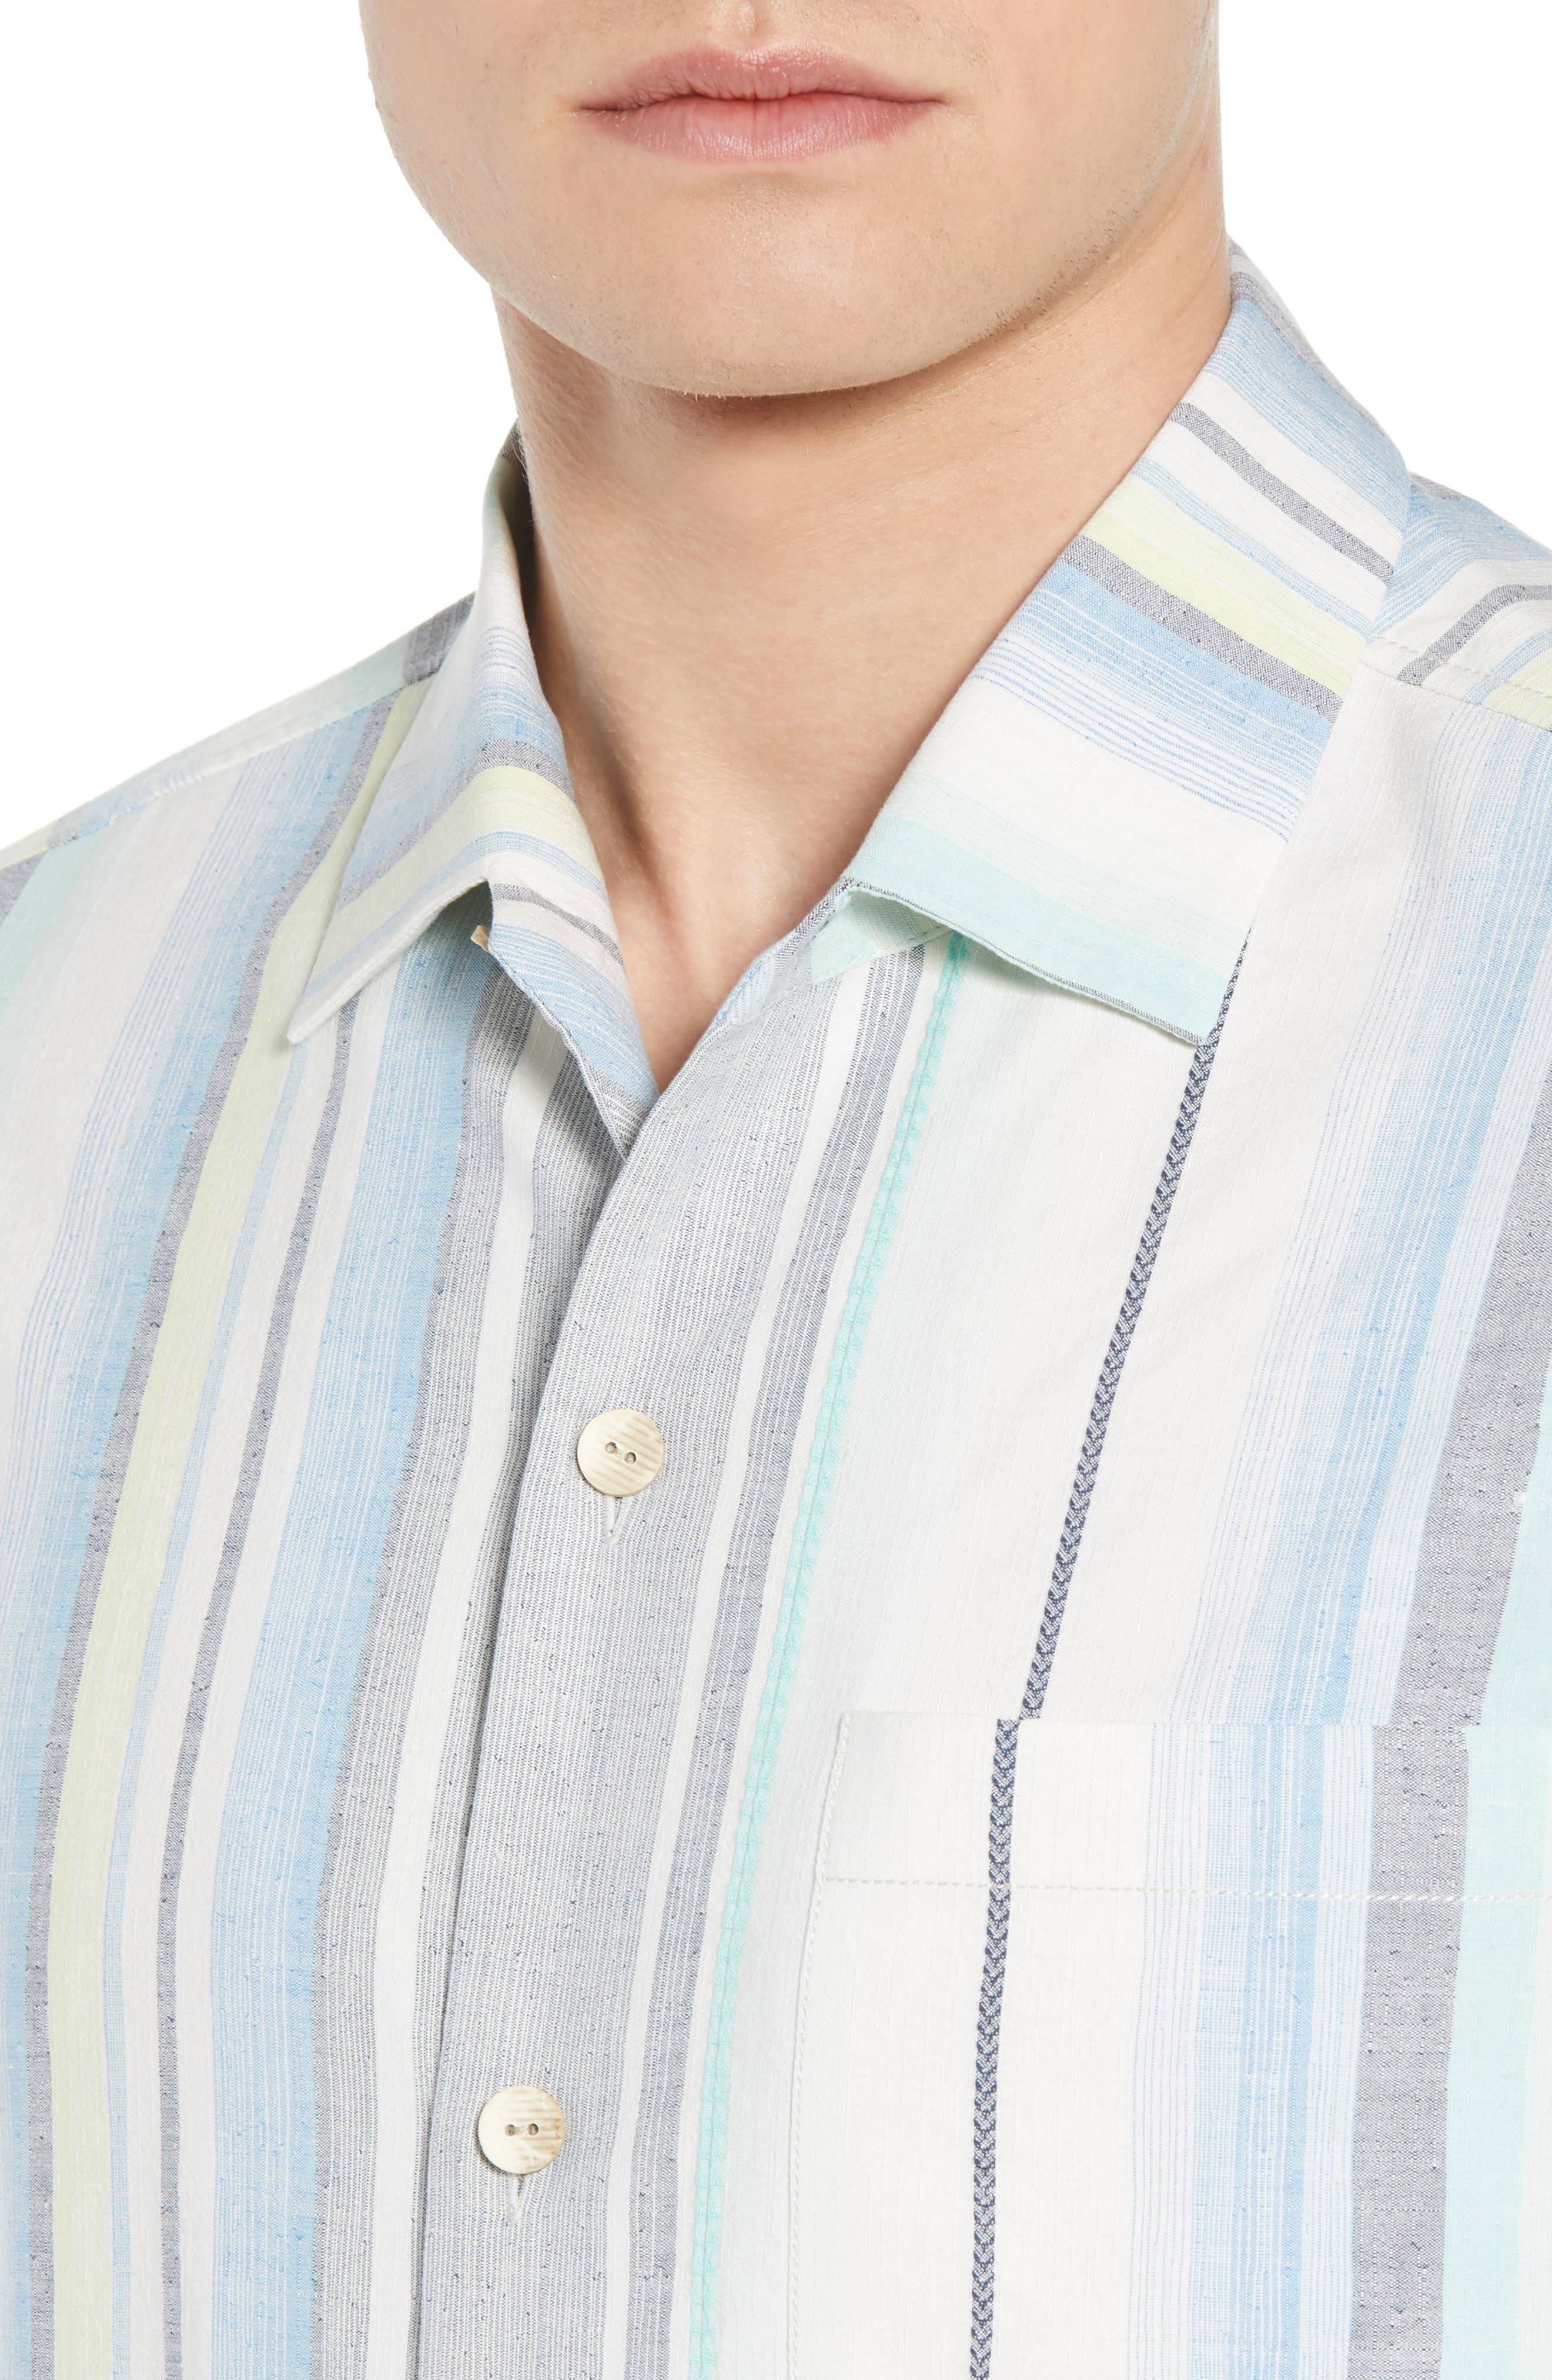 Posado Sands Silk Camp Shirt,                             Alternate thumbnail 4, color,                             BLUE ASTER